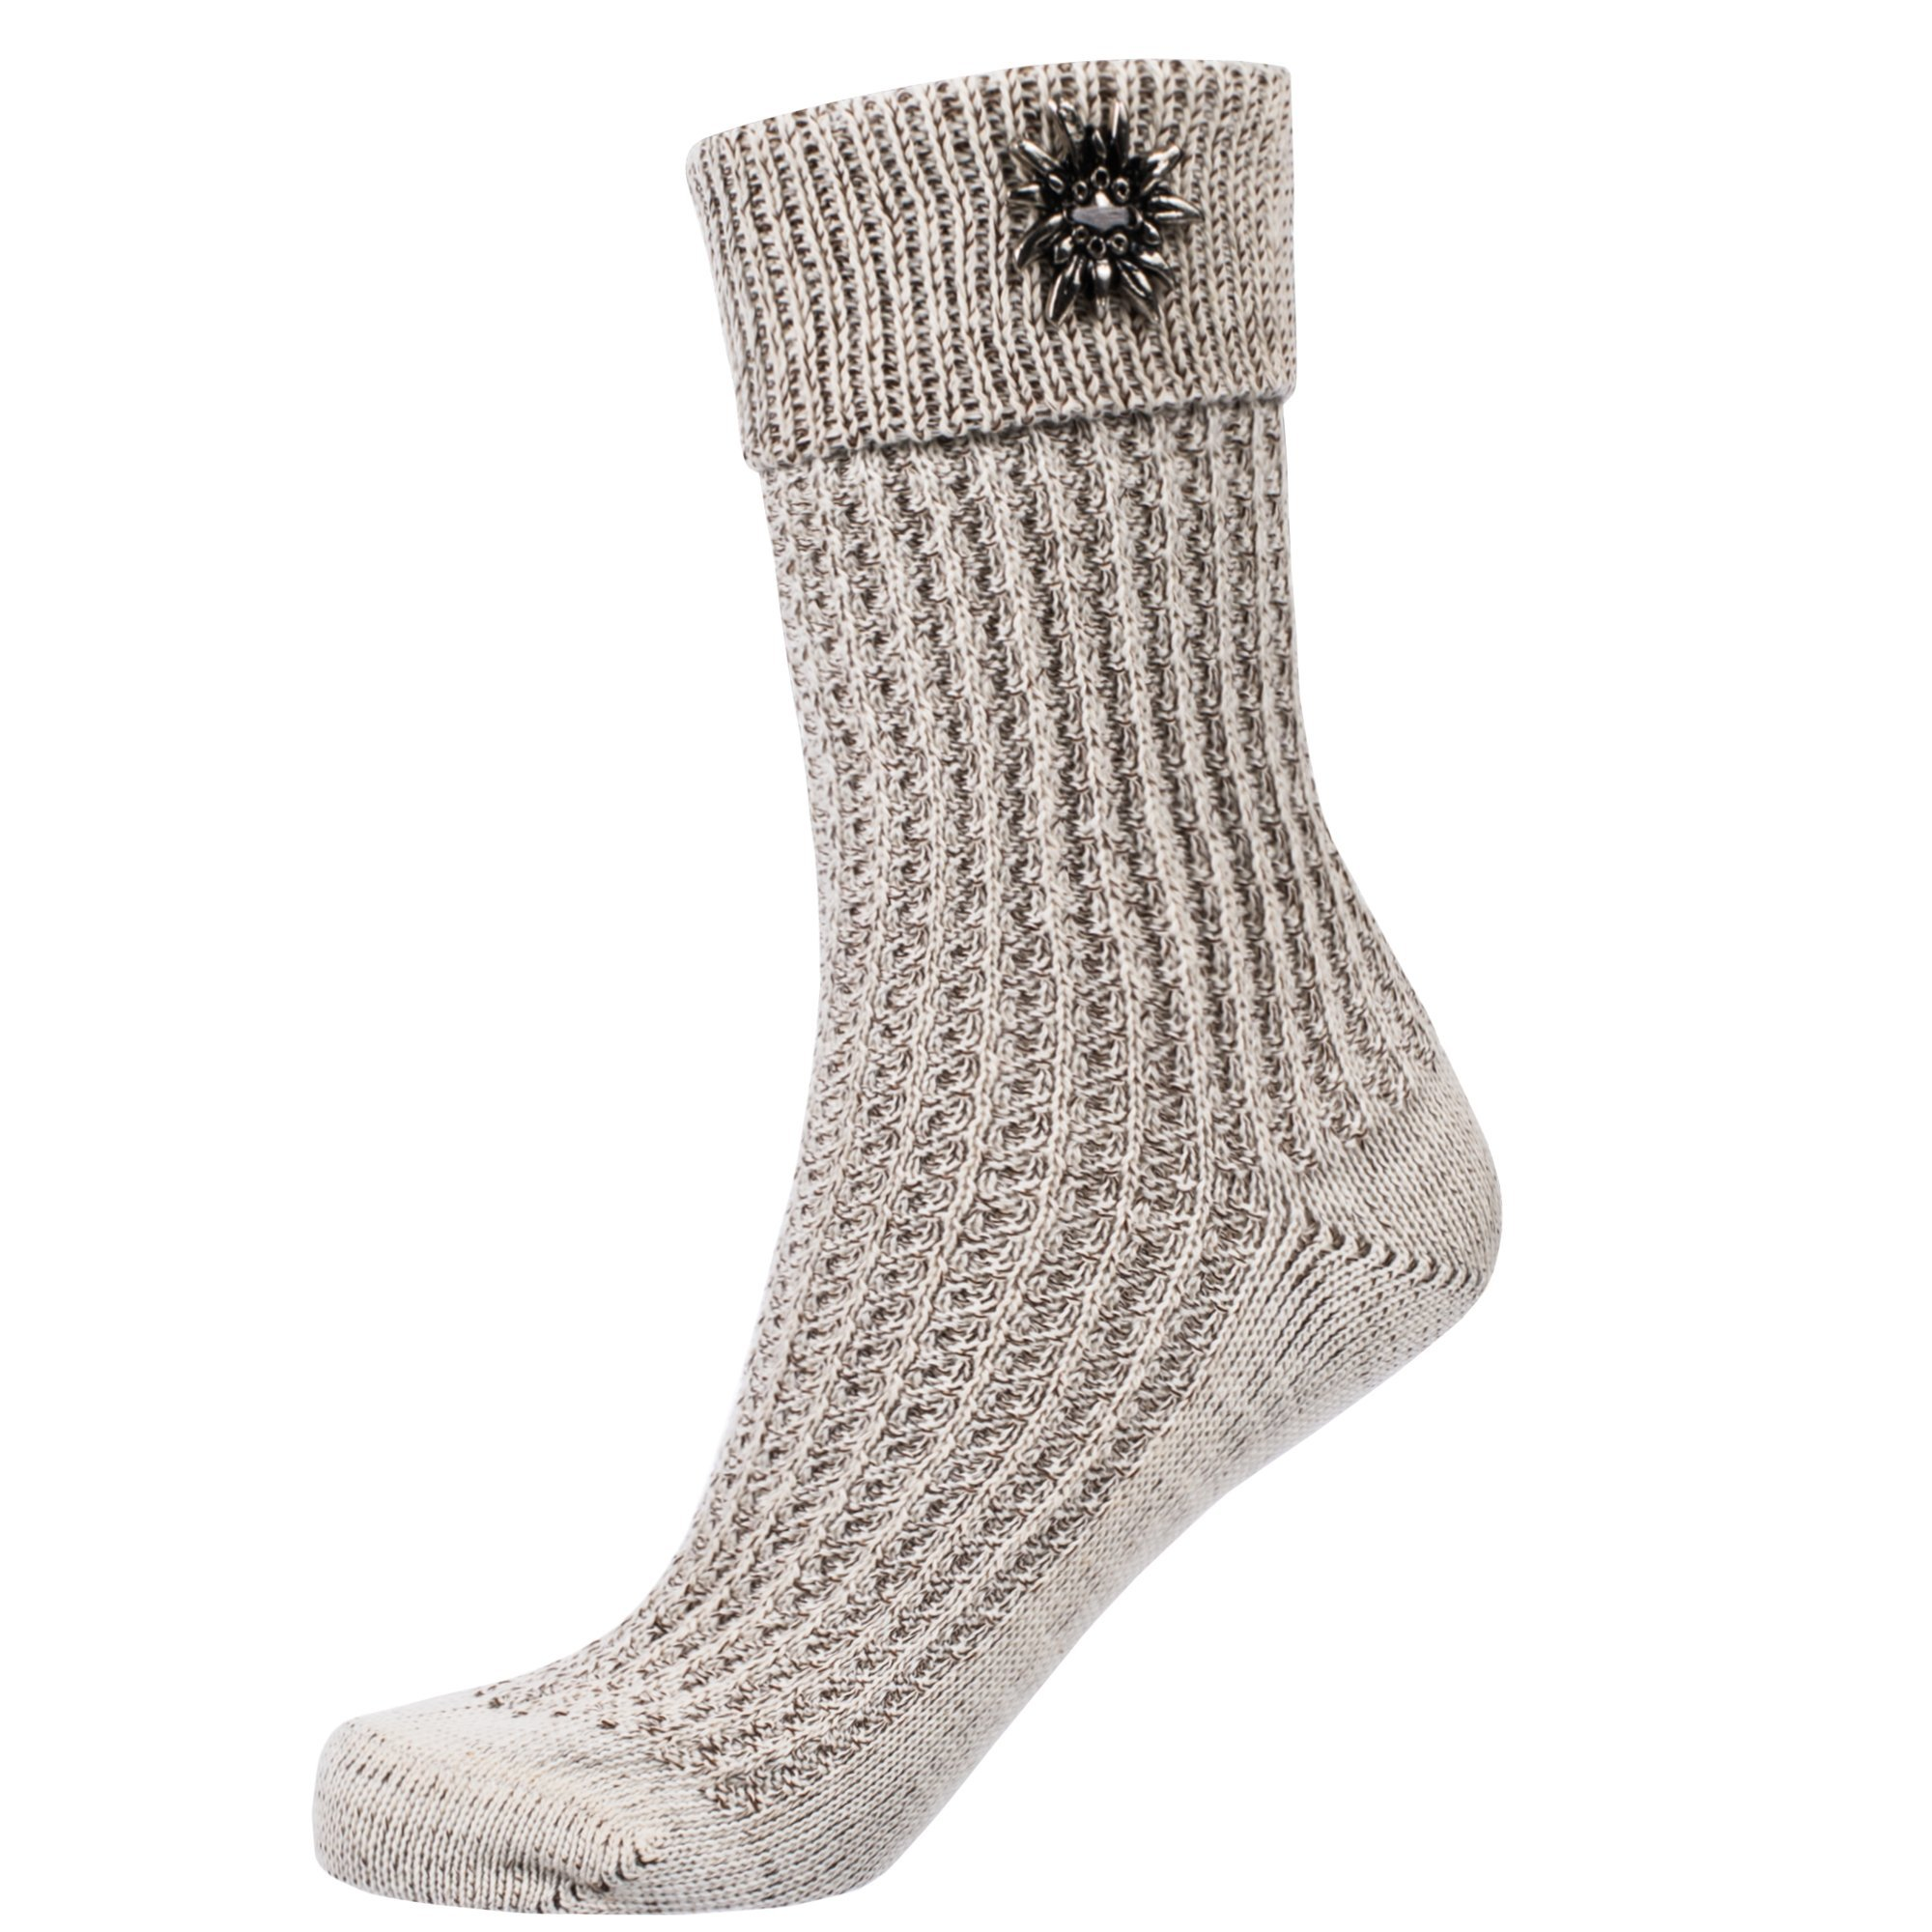 Gaudi-leathers Traditional Socks with Enzian Flower Beige Size 46